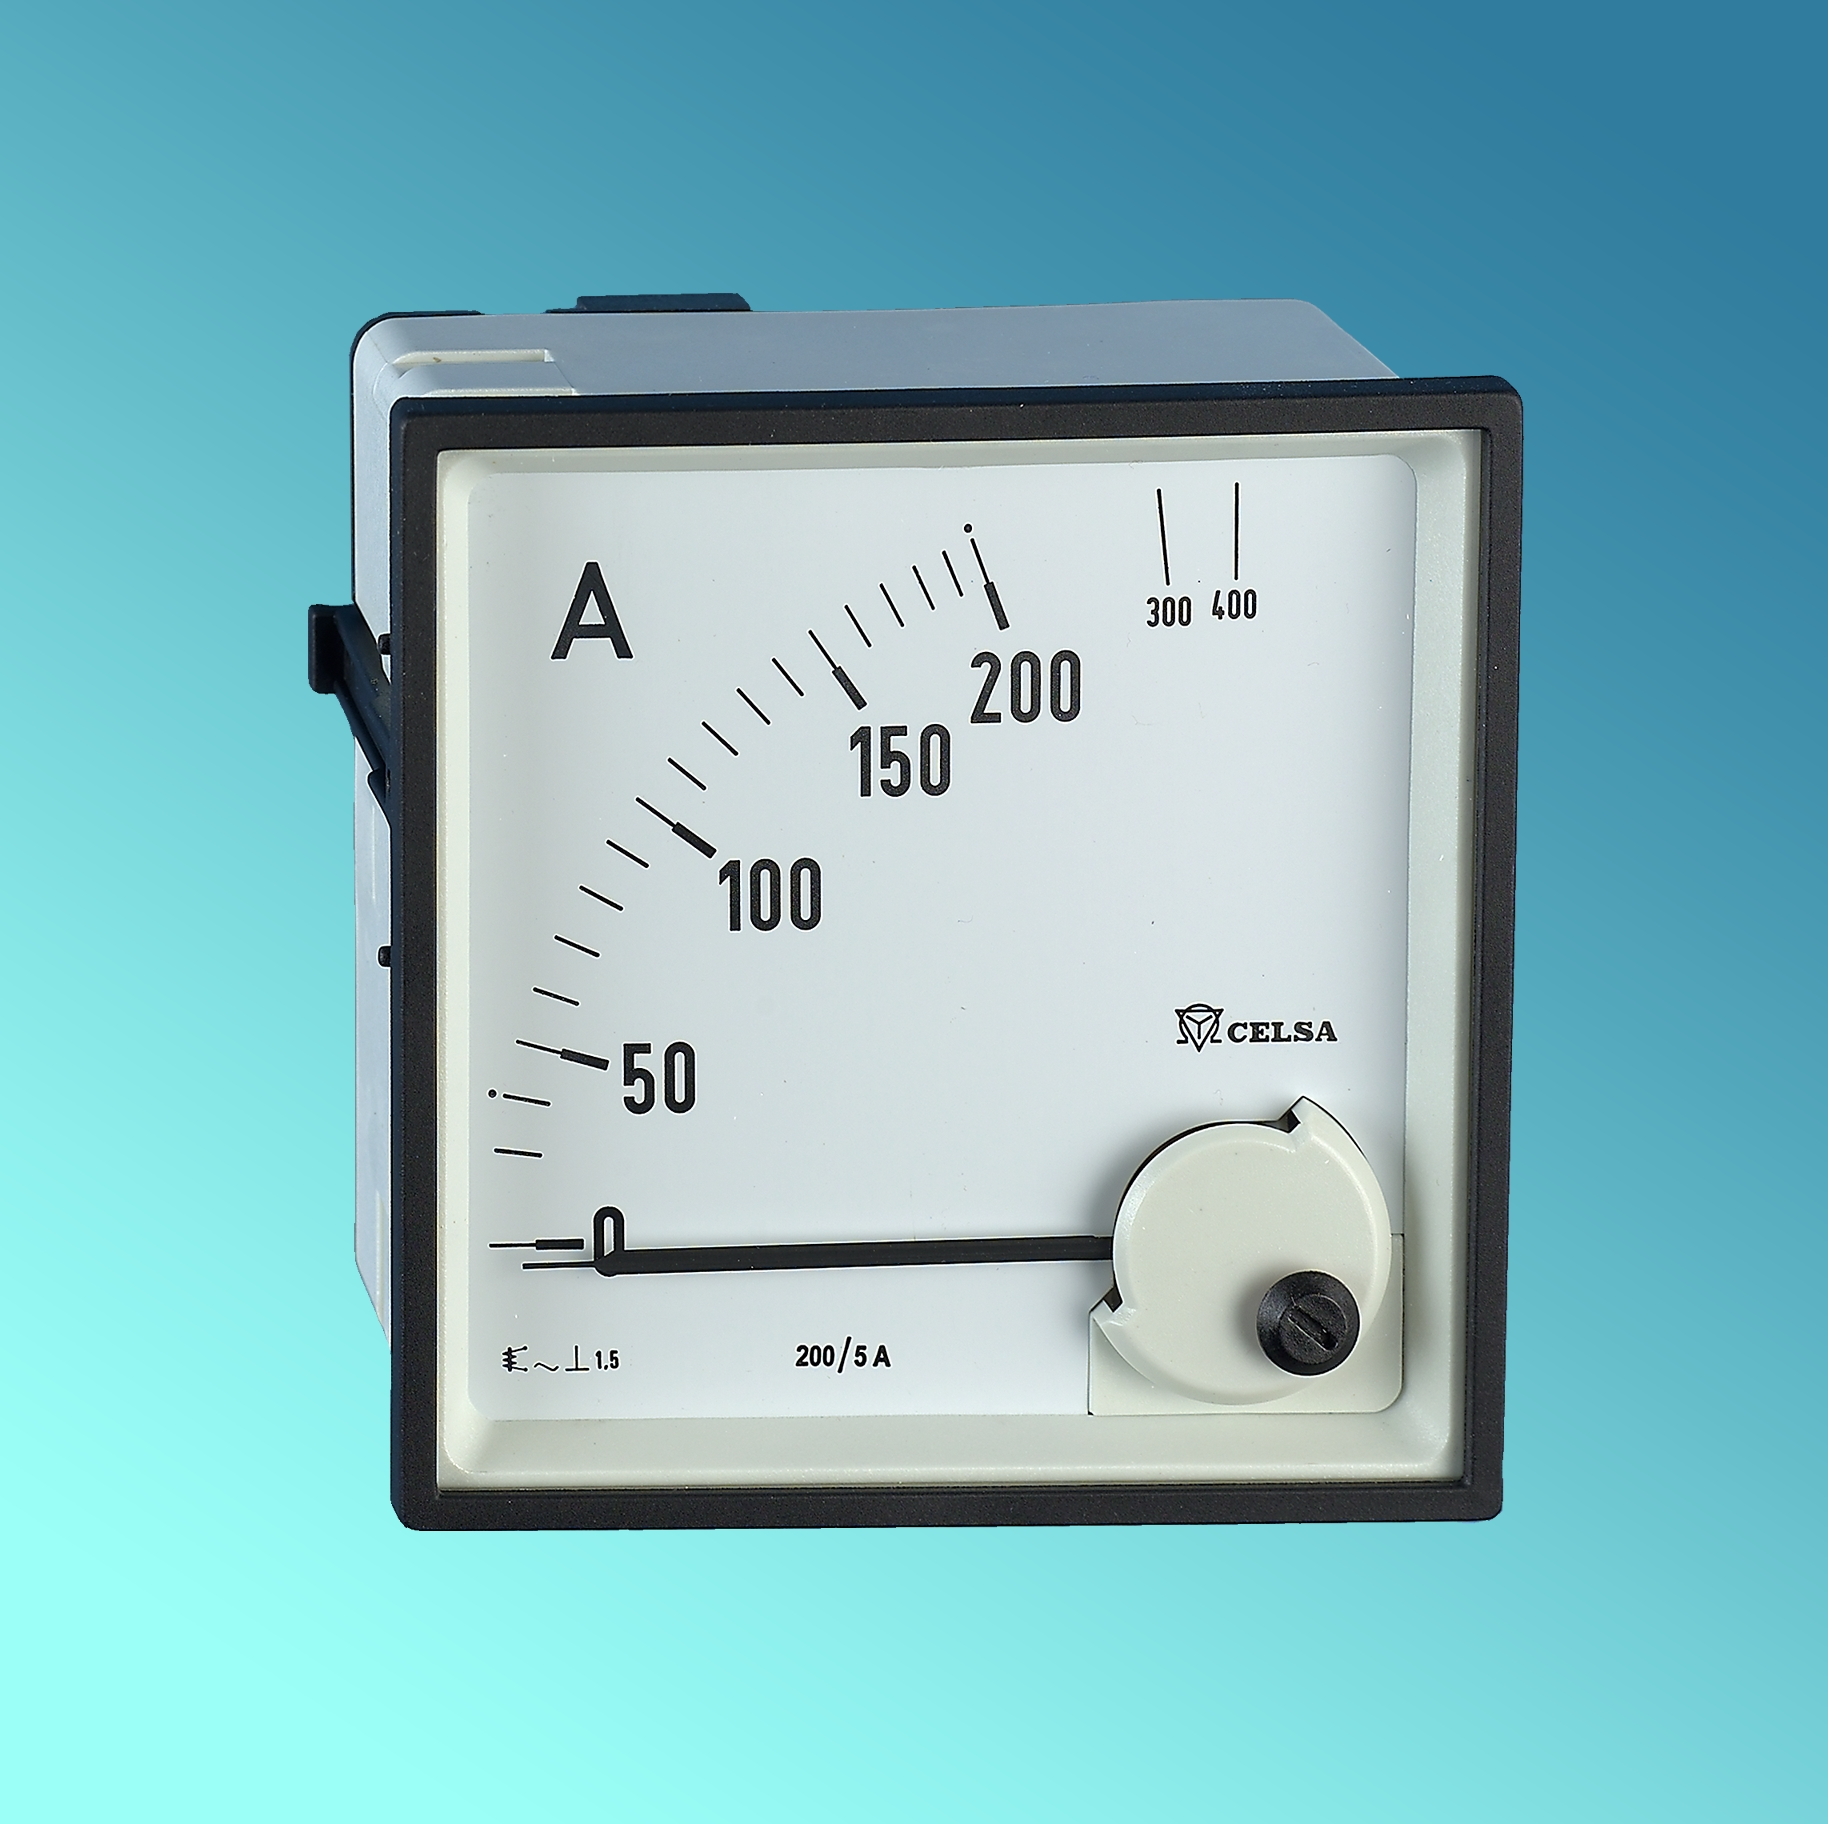 Ac Panel Meters : Eq n analog panel meter ° ac takowa oy